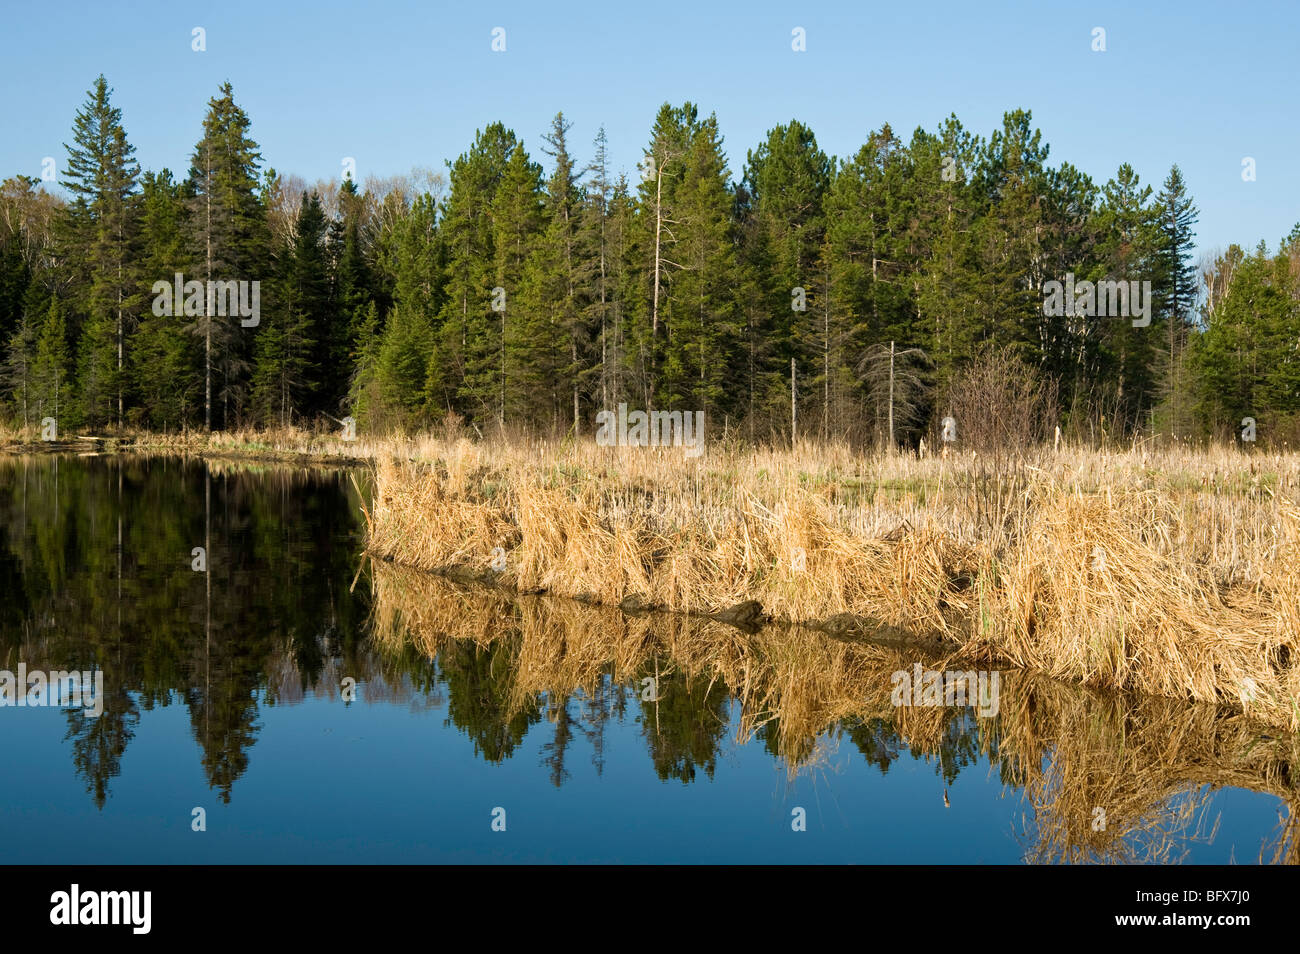 Reflections in beaverpond with beaver dam and early spring grasses, Greater Sudbury, Ontario, Canada - Stock Image